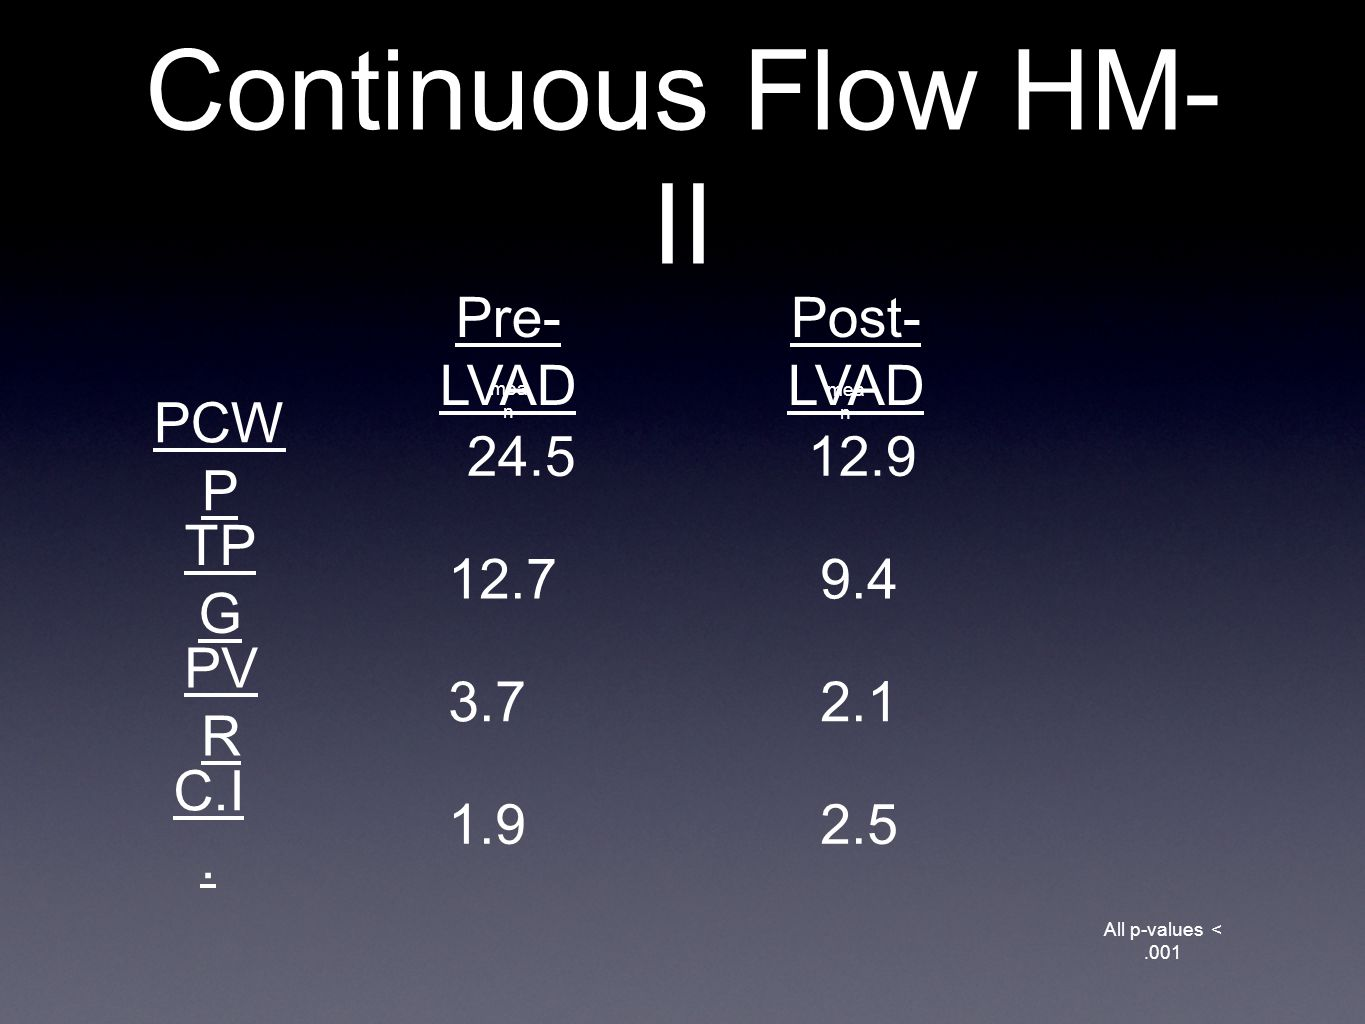 Continuous Flow HM-II Pre-LVAD Post-LVAD PCWP 24.5 12.9 TPG 12.7 9.4